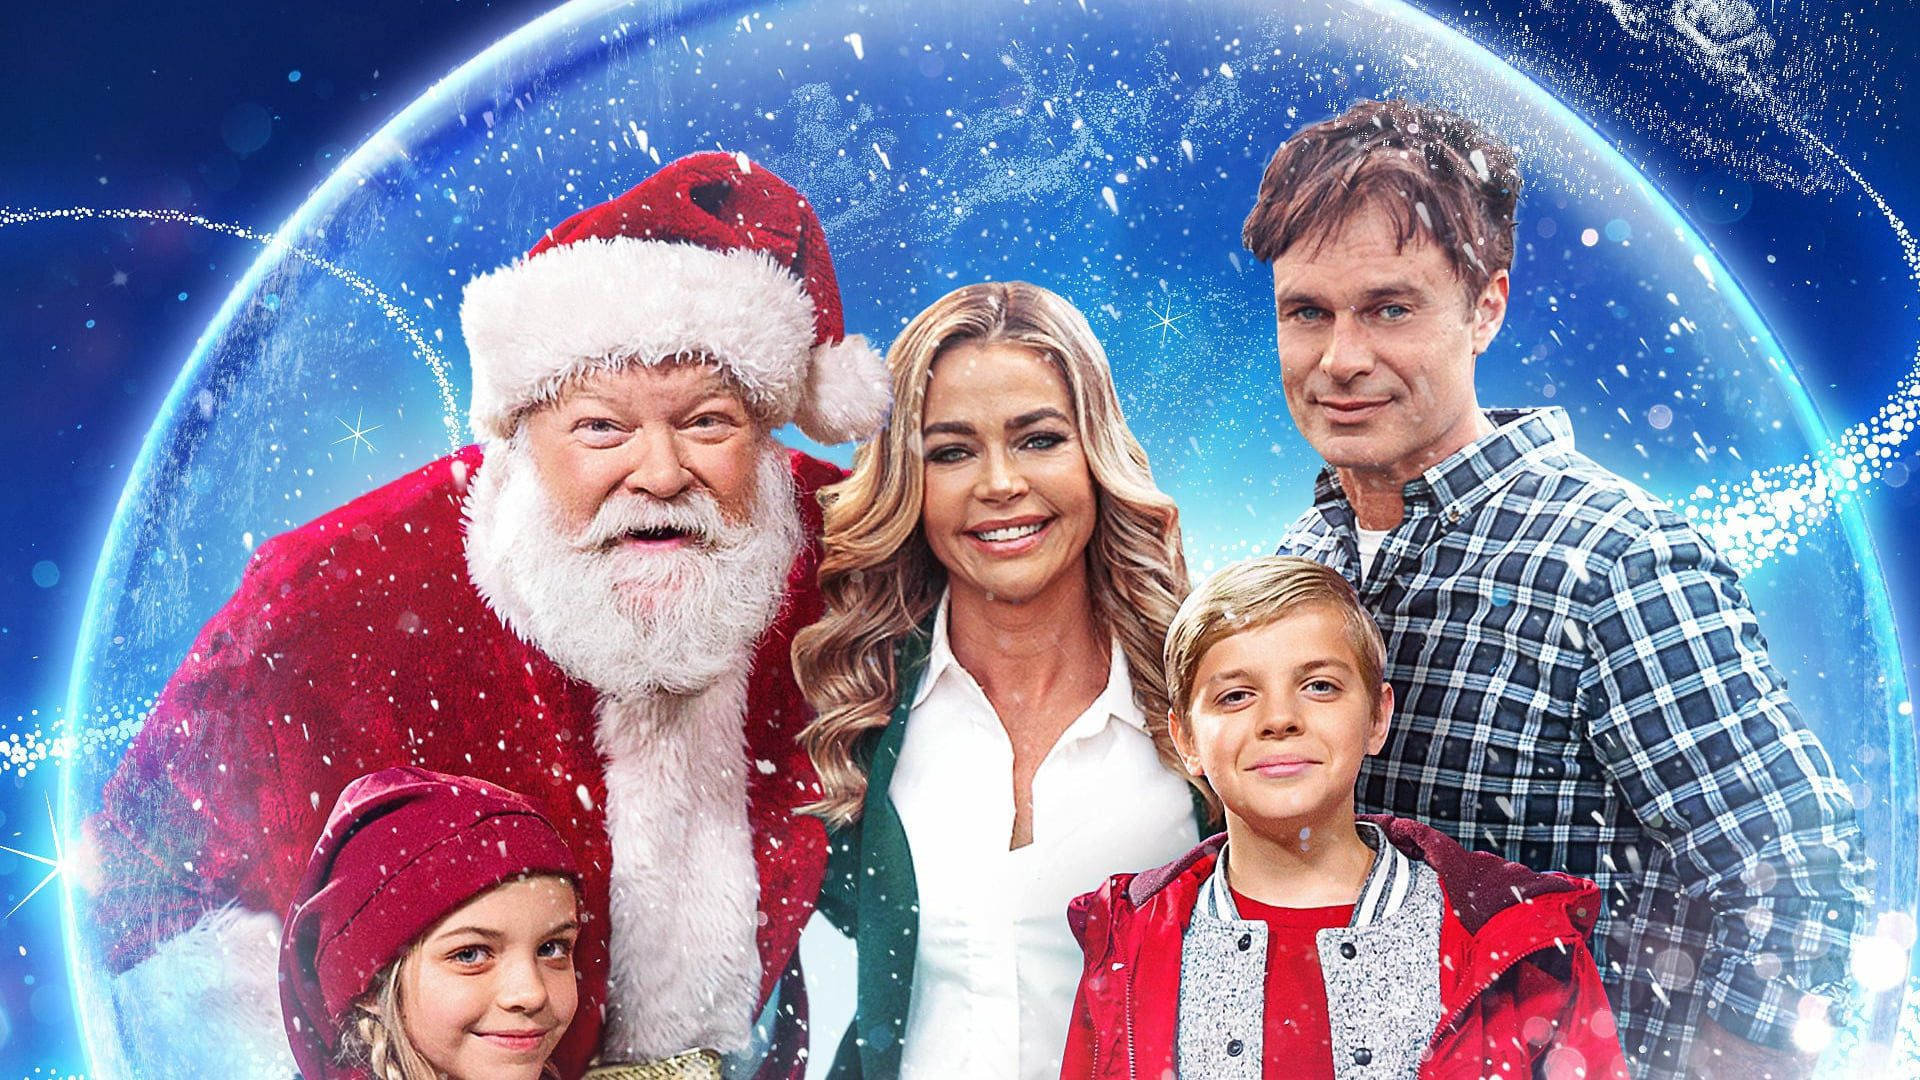 My Adventures with Santa 2019 123movies